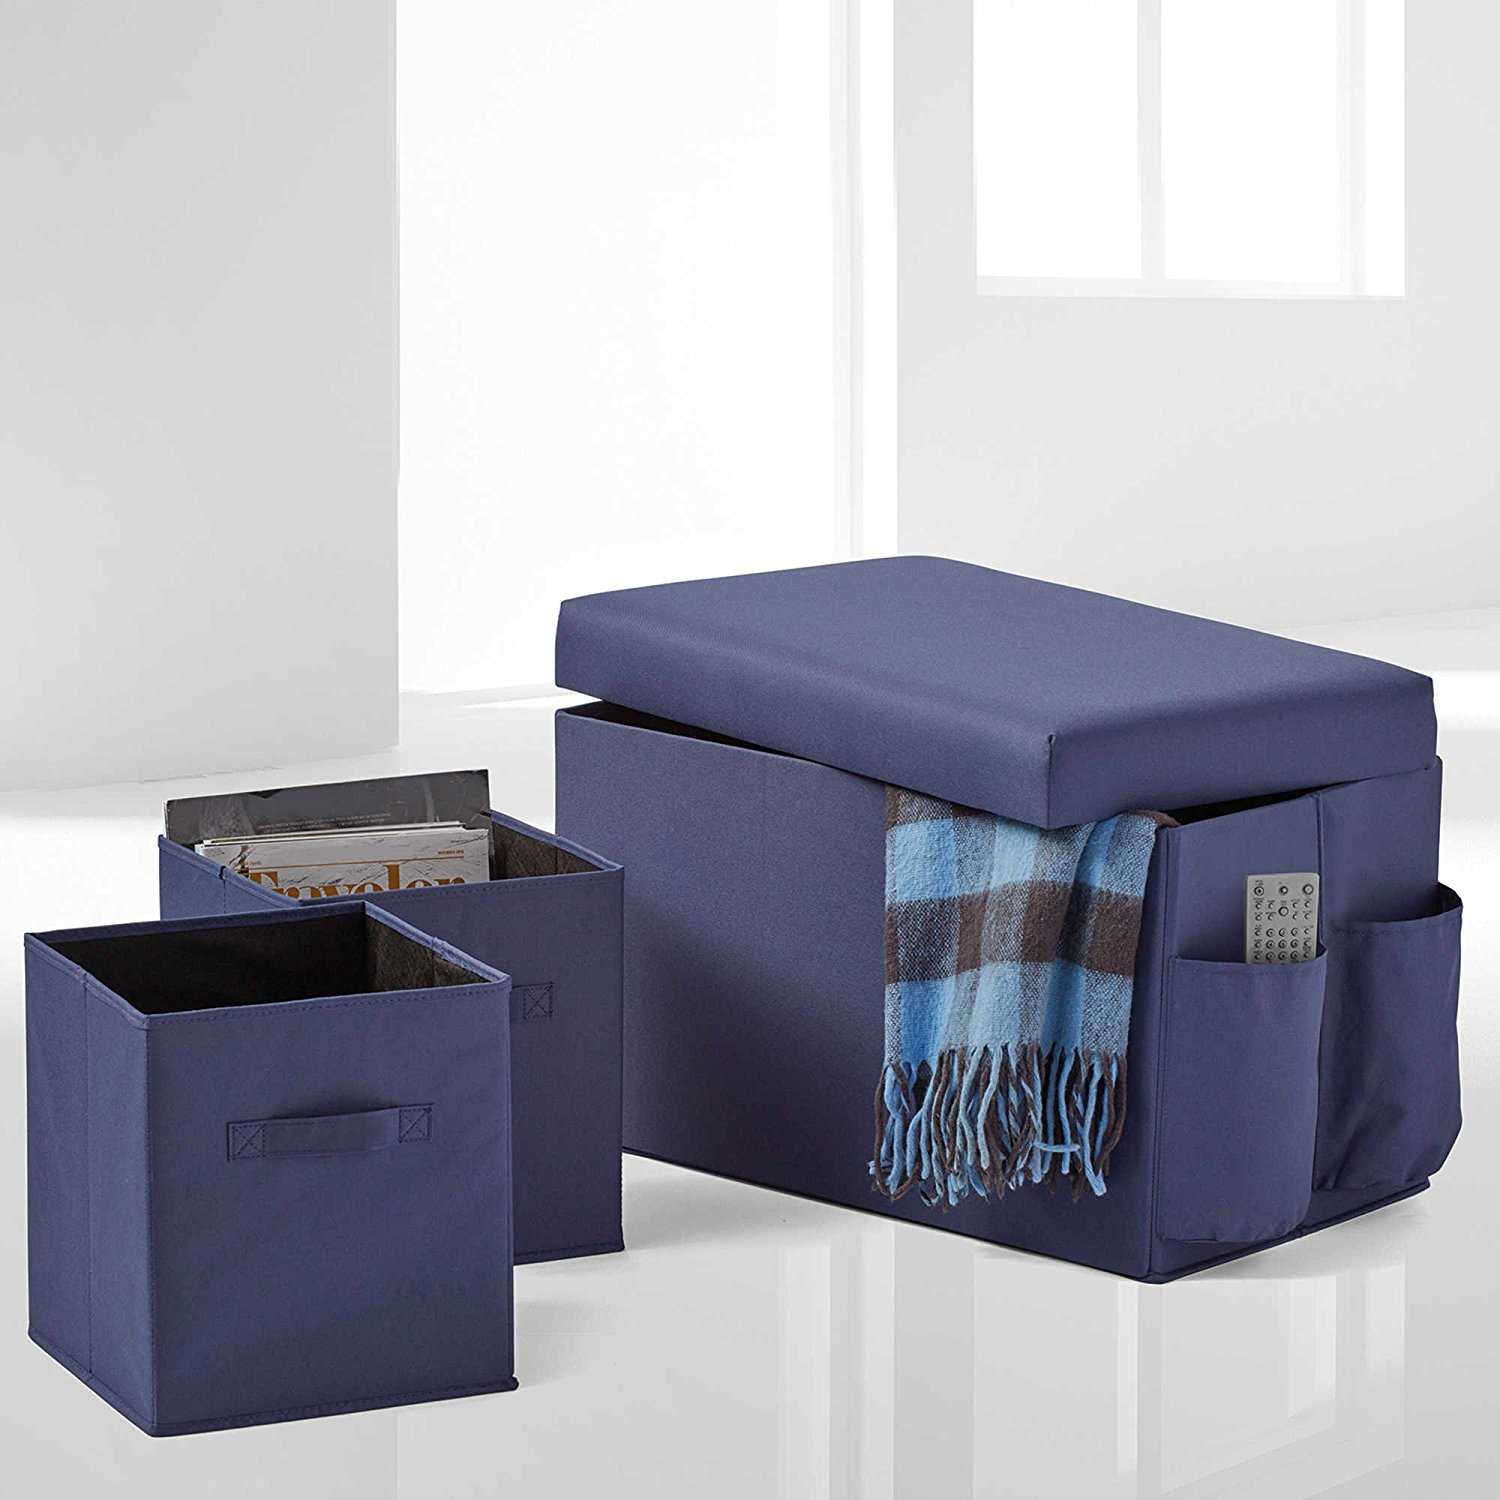 Groovy Buy Storage Cubes Portable Storage Storage Ottoman Cube Alphanode Cool Chair Designs And Ideas Alphanodeonline